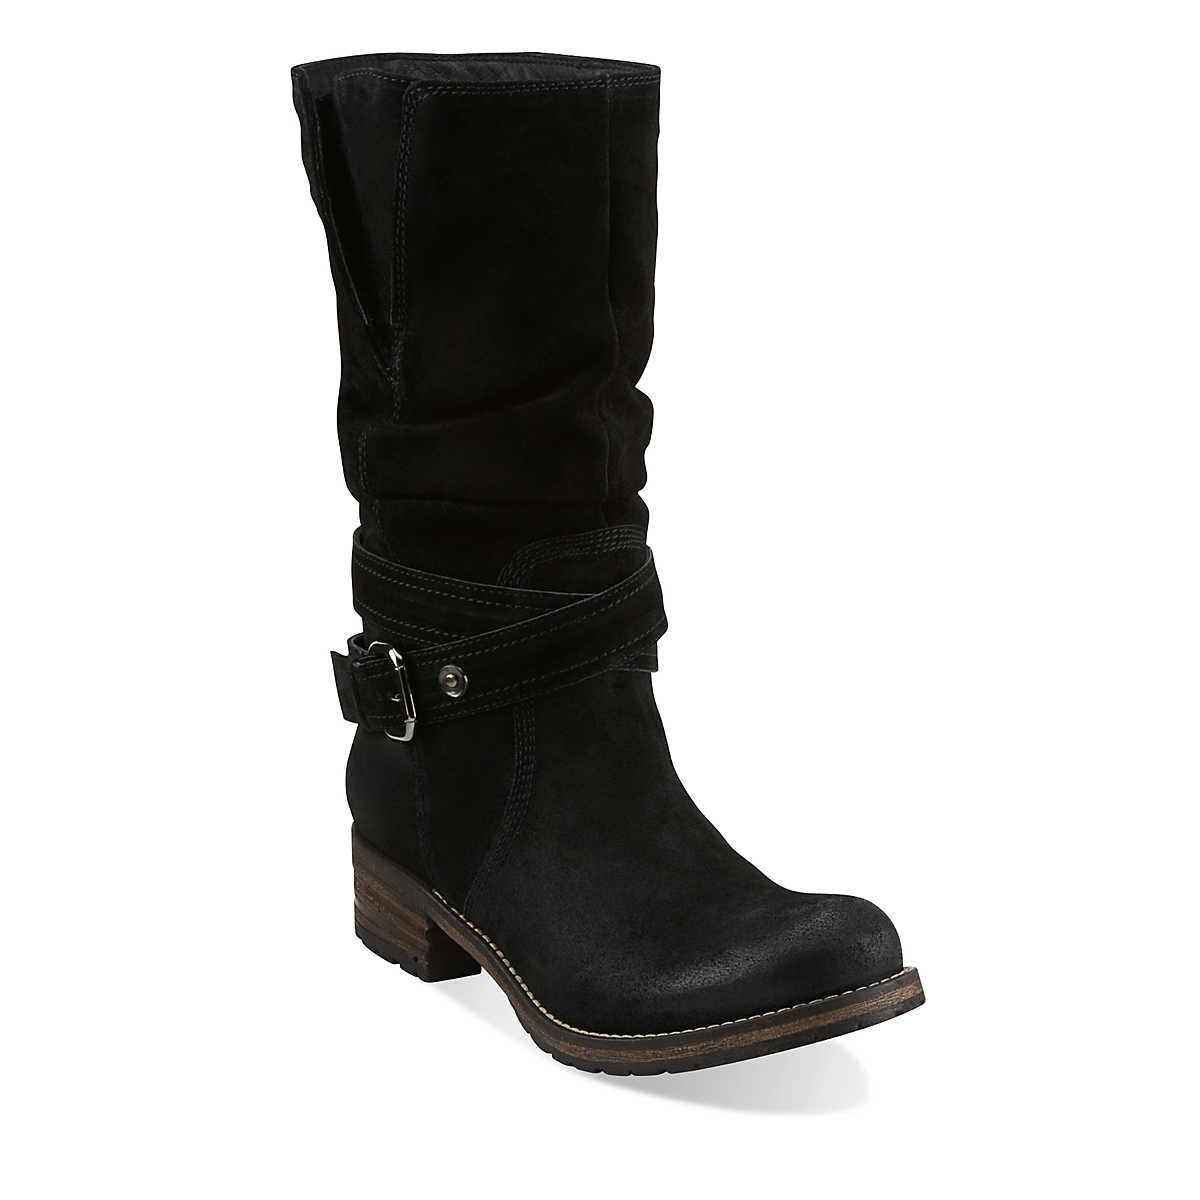 Majorca Villa in Black Suede - Womens Boots from Clarks